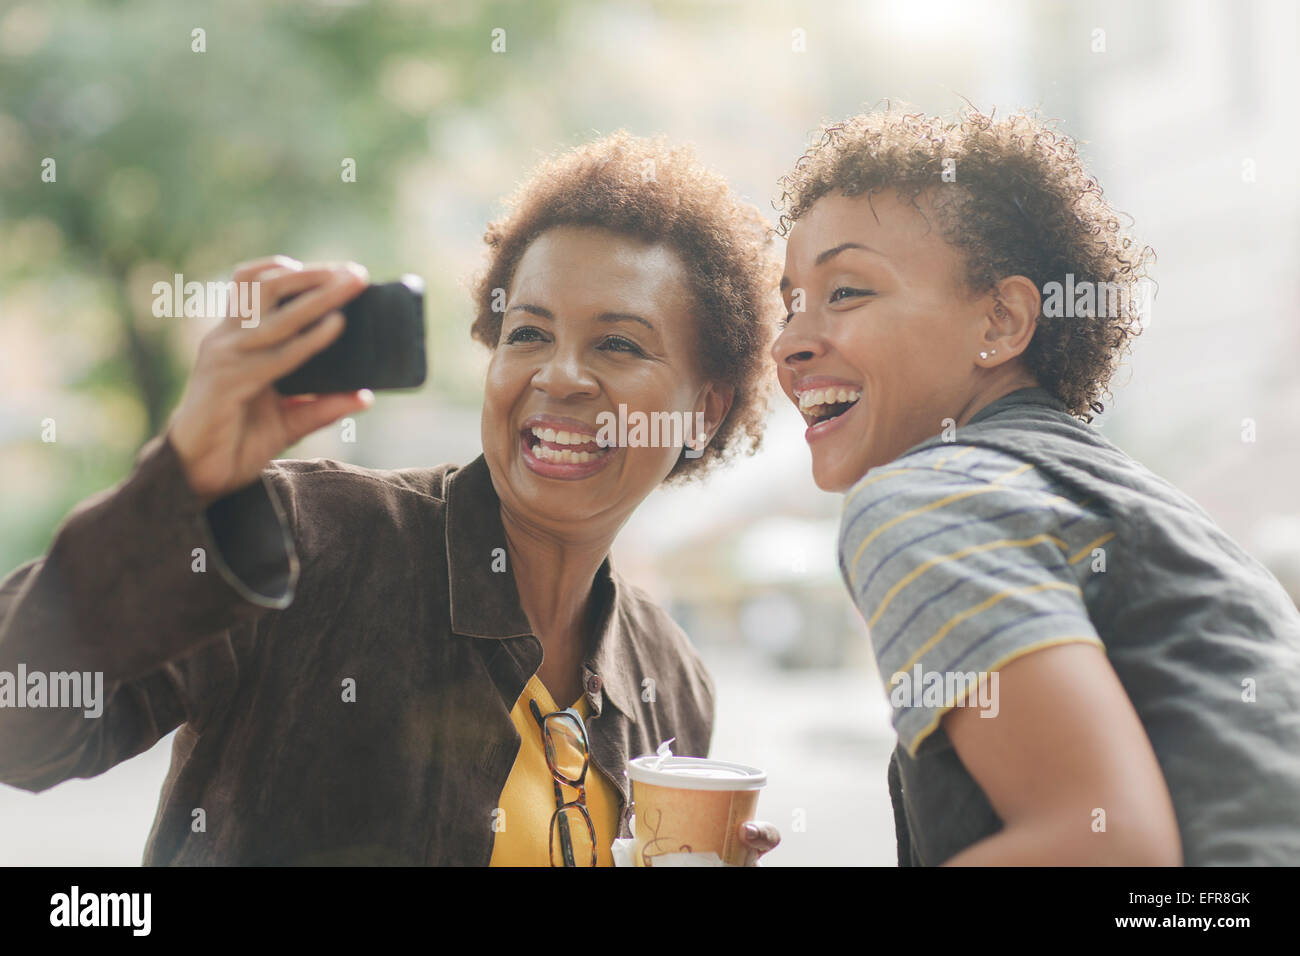 Two mature female friends taking smartphone selfie on street - Stock Image